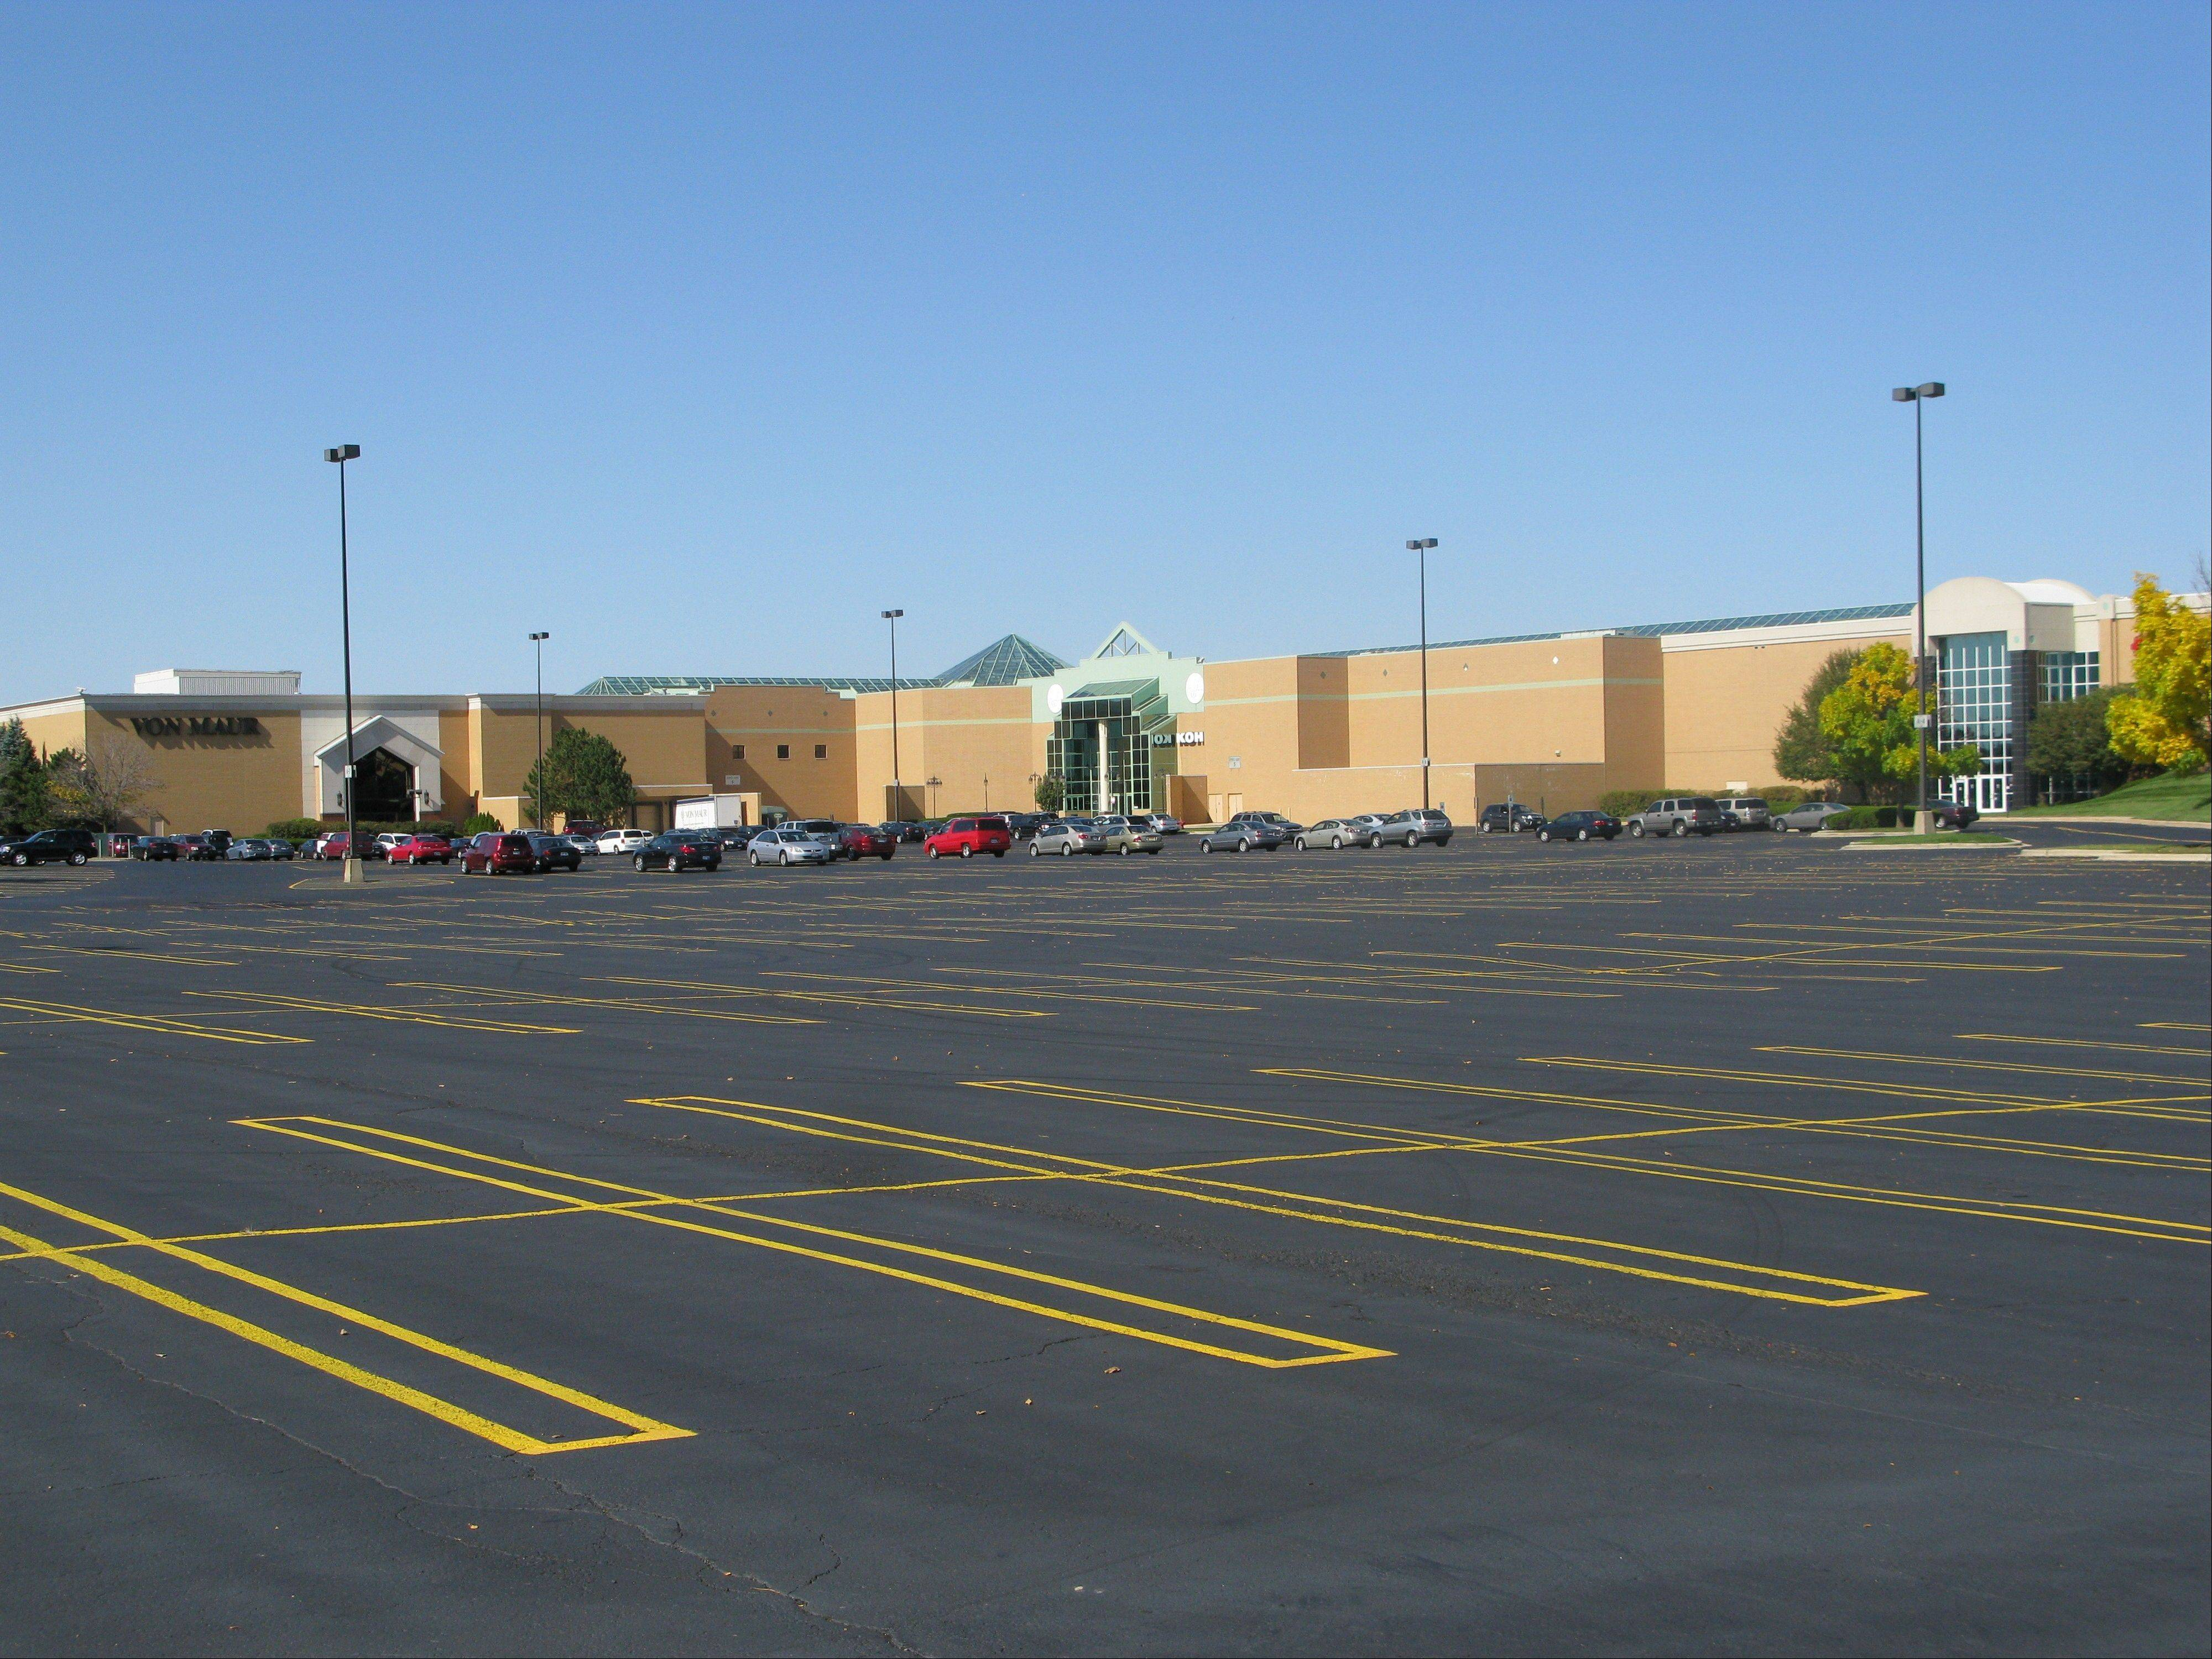 The task force noted the desolate, vast parking lot of Charlestowne Mall.